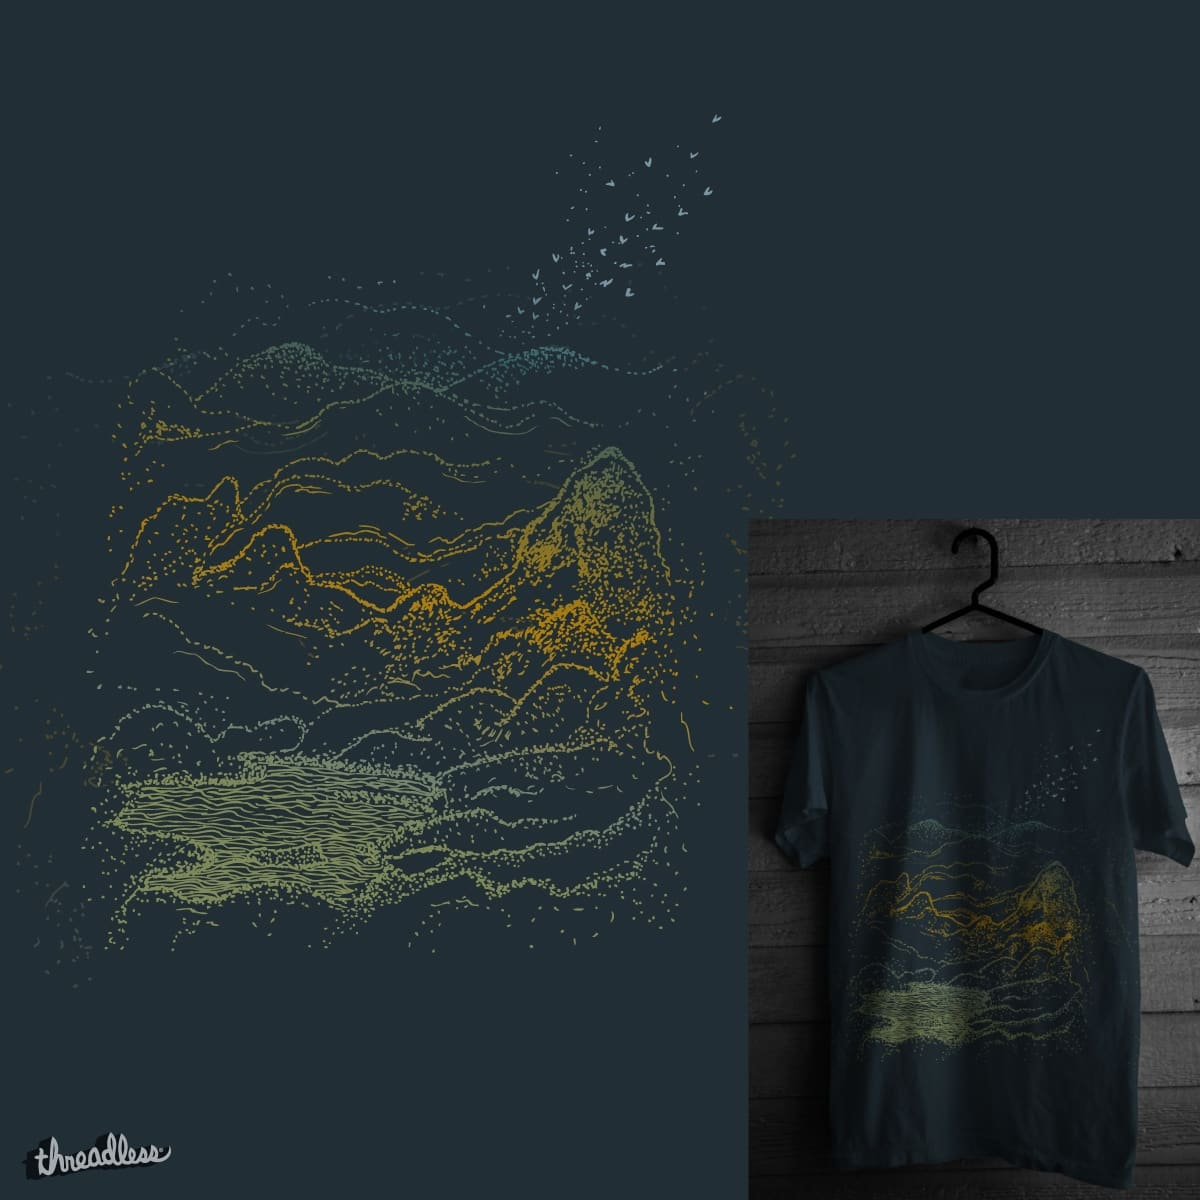 Highpoint  by rskinner1122 on Threadless